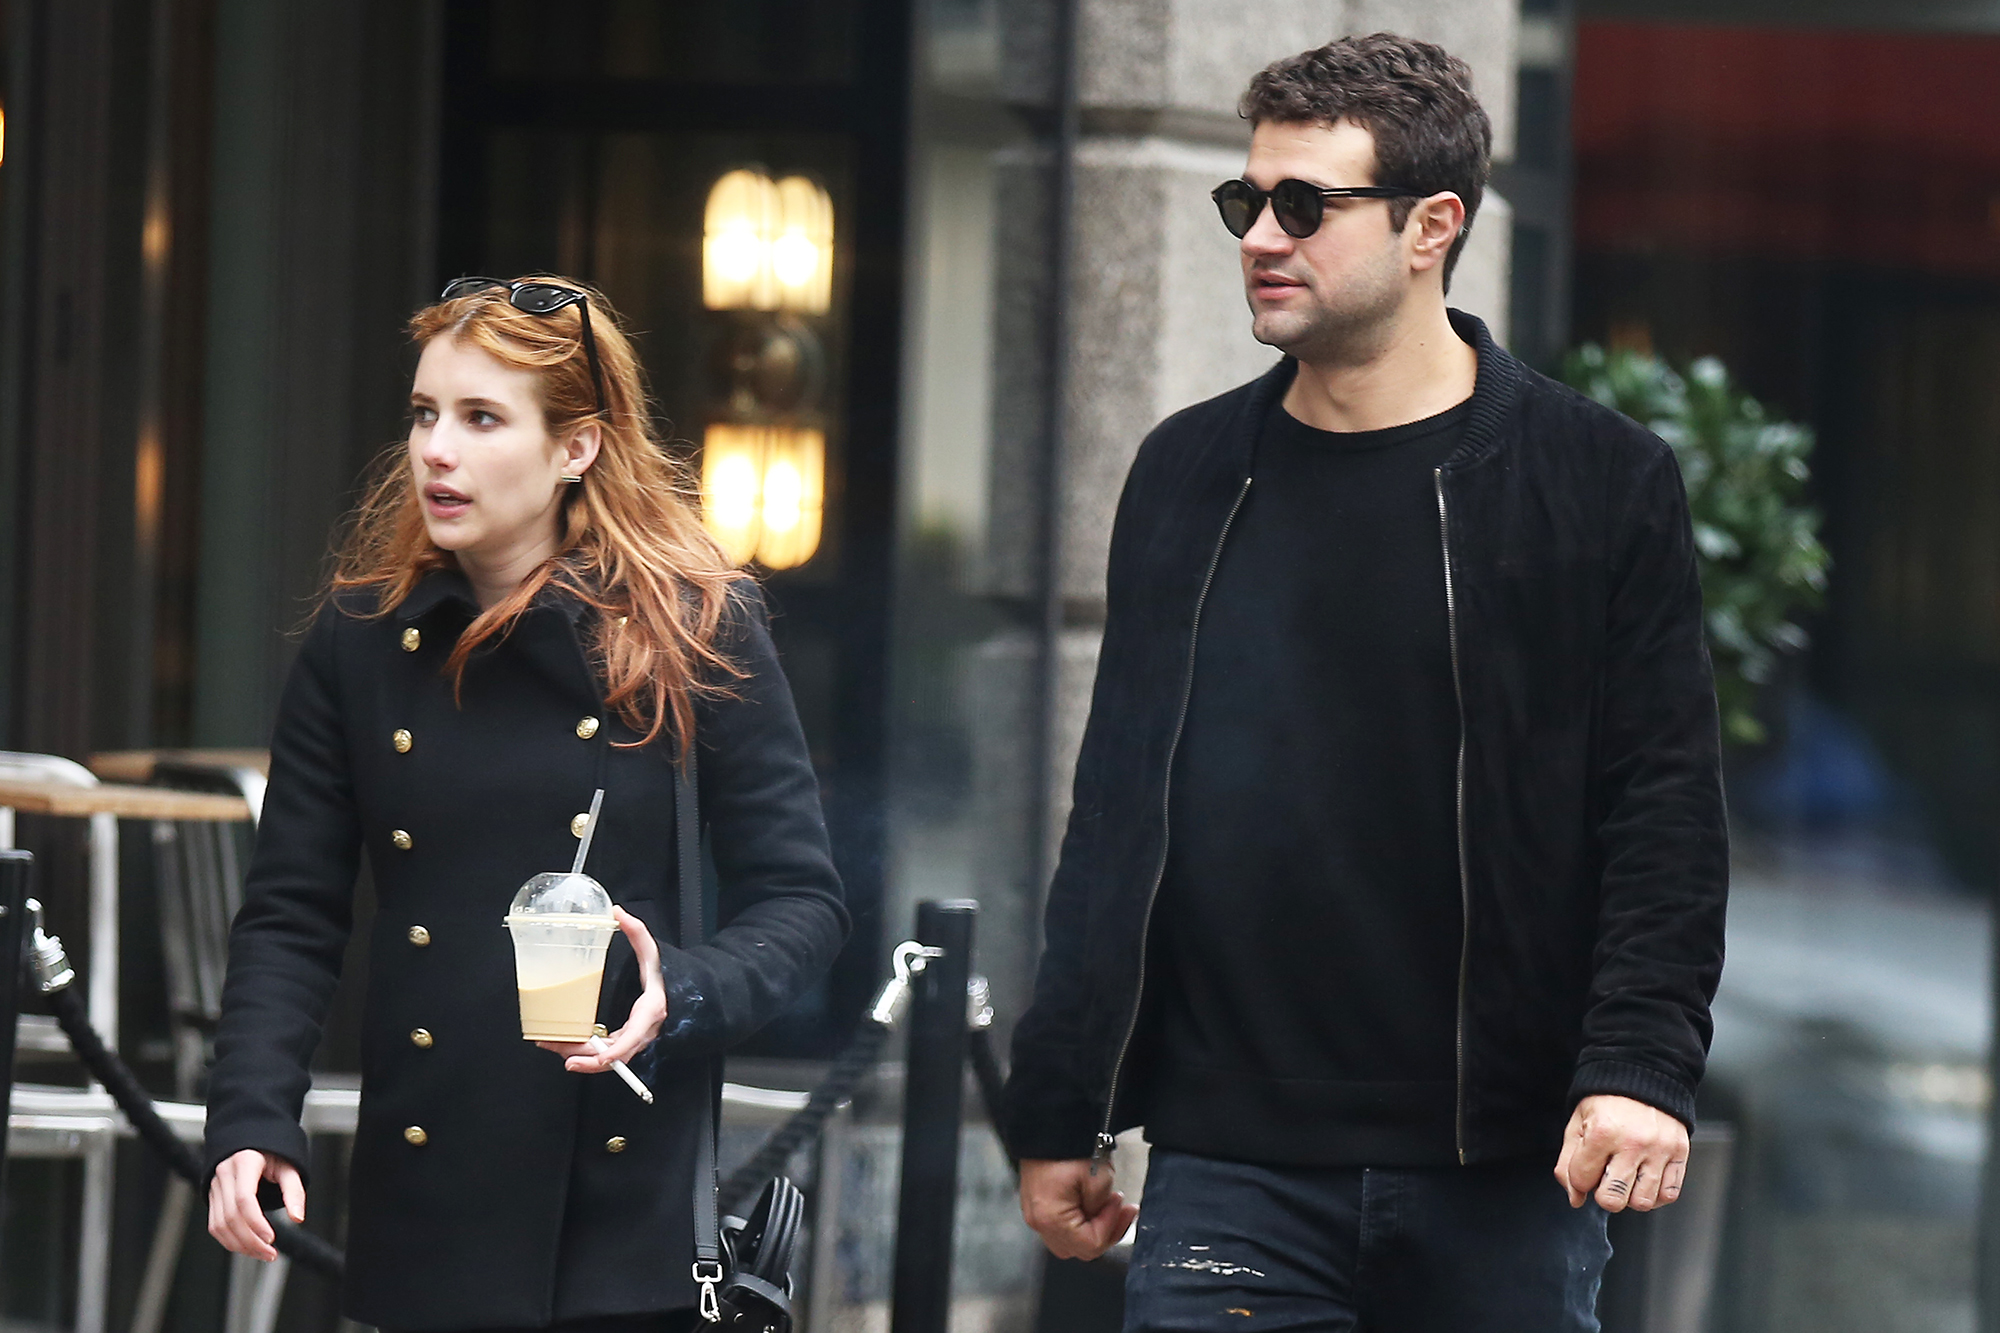 Emma Roberts' Dating History - After her first split from Peters, Roberts stepped out with the director in June 2016. A source told Us at the time that the duo were introduced by their mutual friend, fashion designer Brit Elkin.